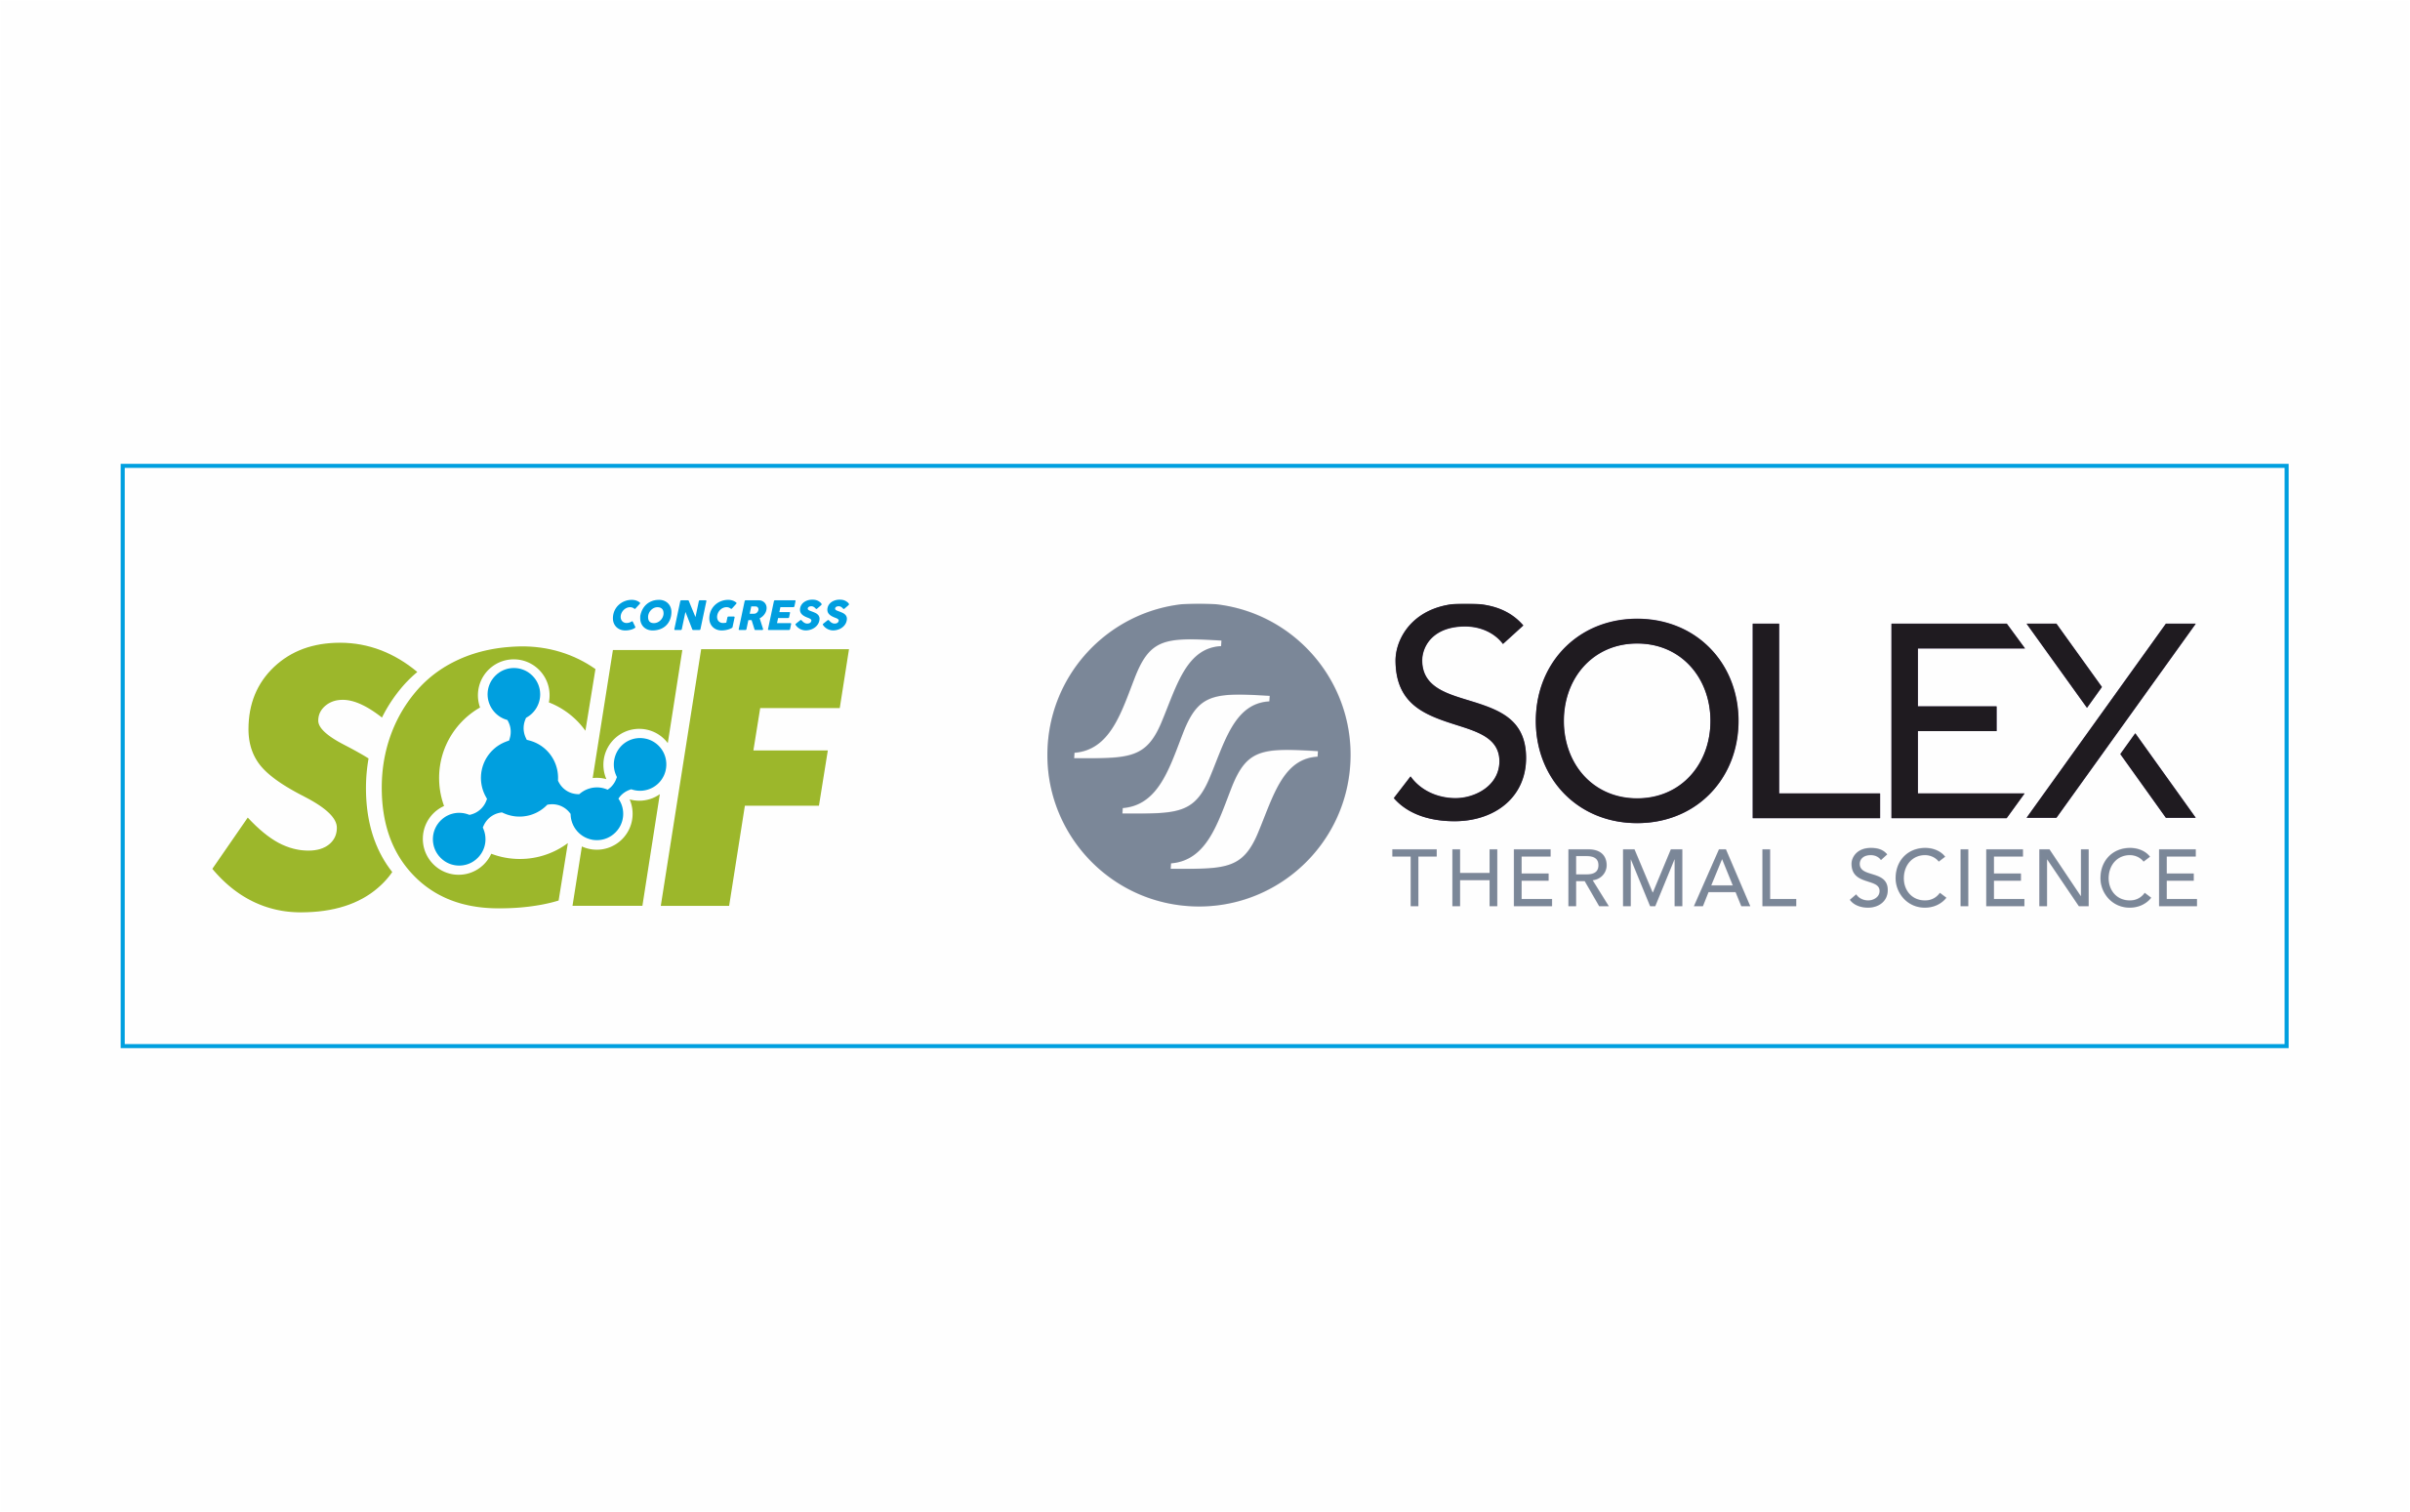 Signed a strategic partnership agreement between SCIF Congress and SOLEX Thermal Science Inc.